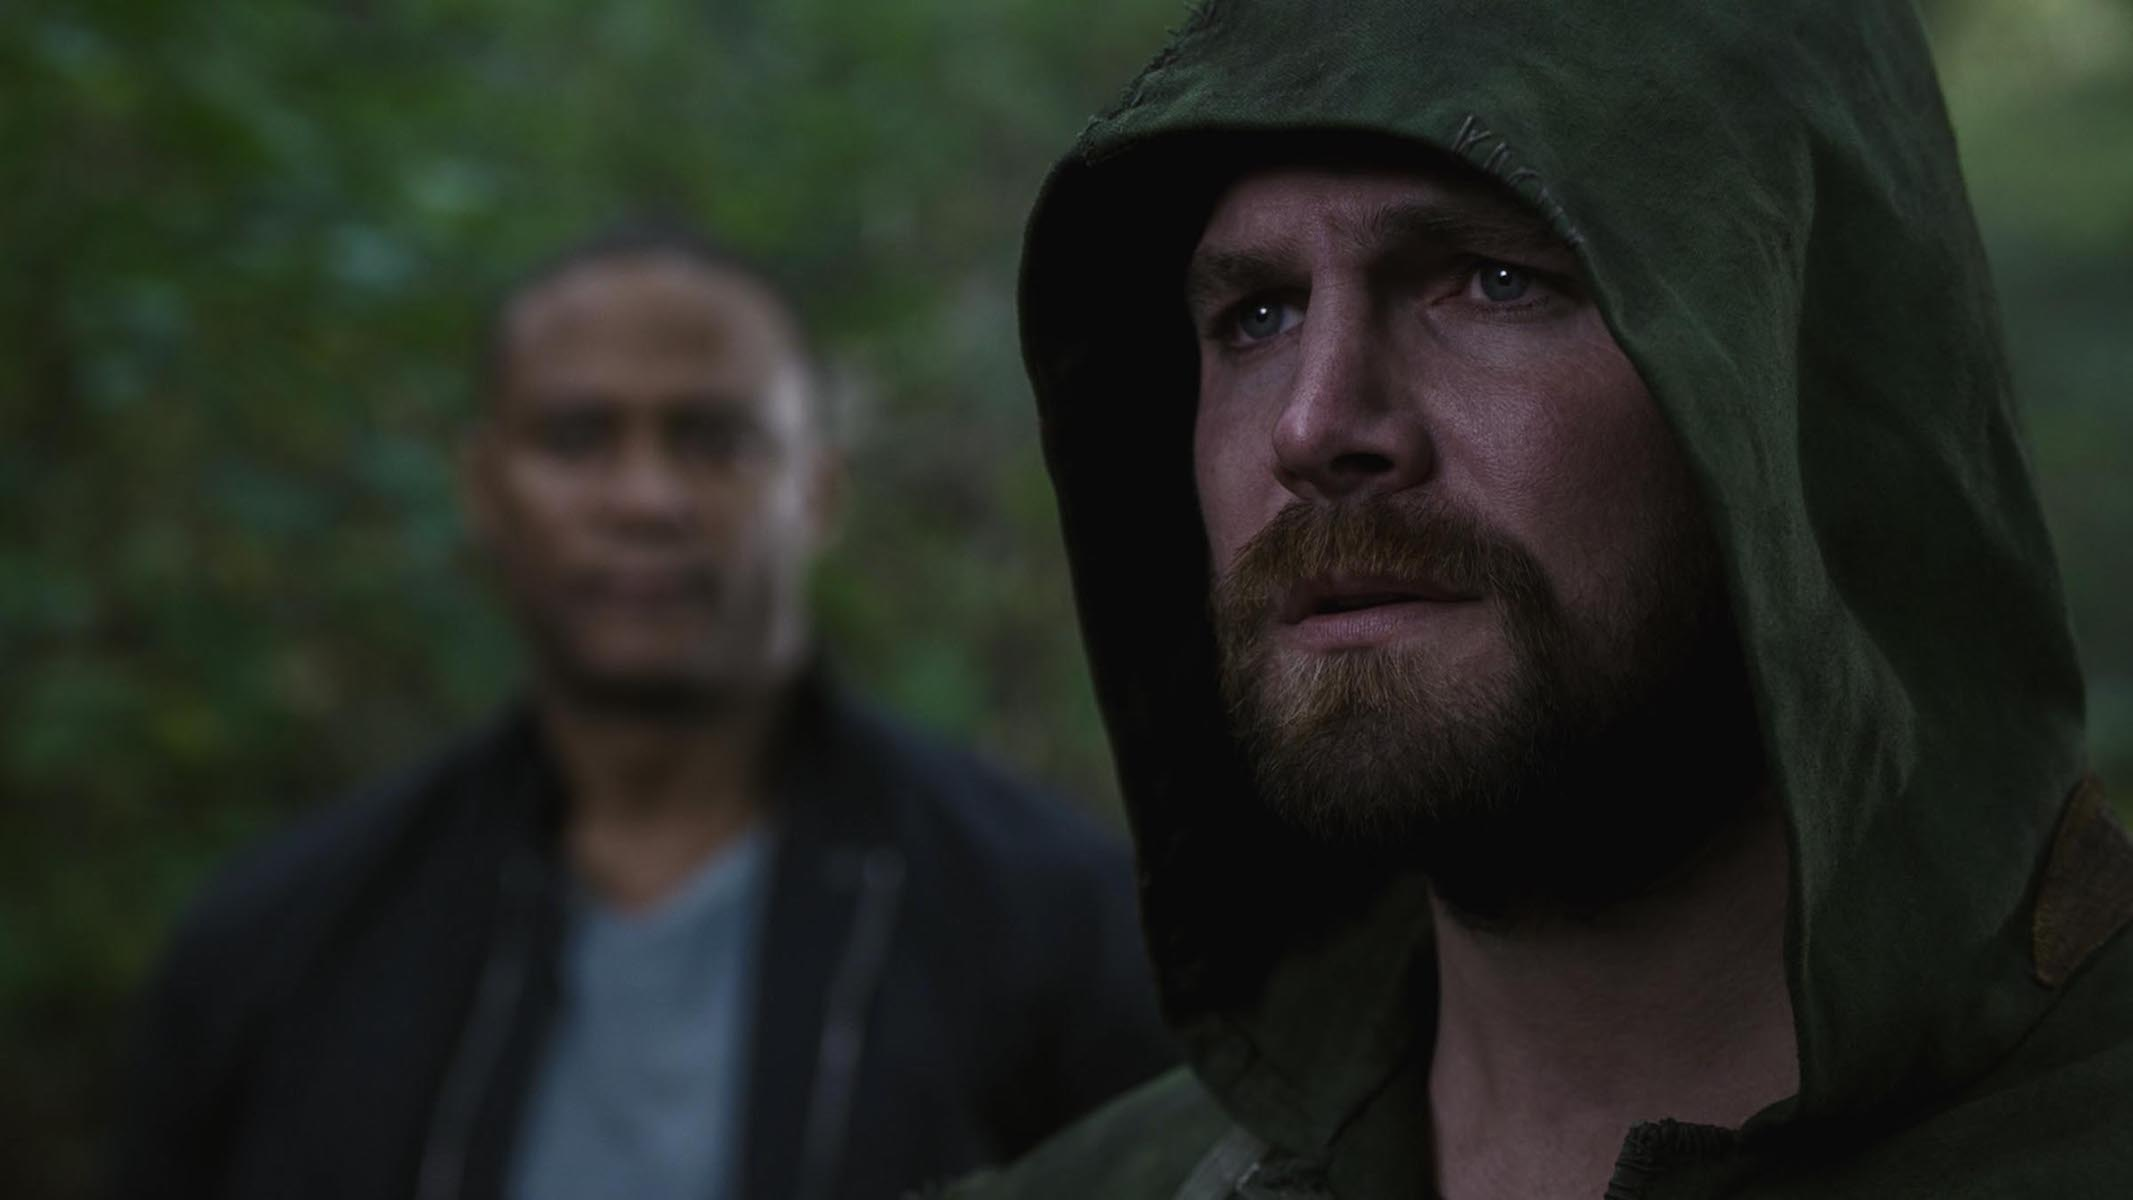 David Ramsey as John Diggle/Spartan and Stephen Amell as Oliver Queen/Green Arrow